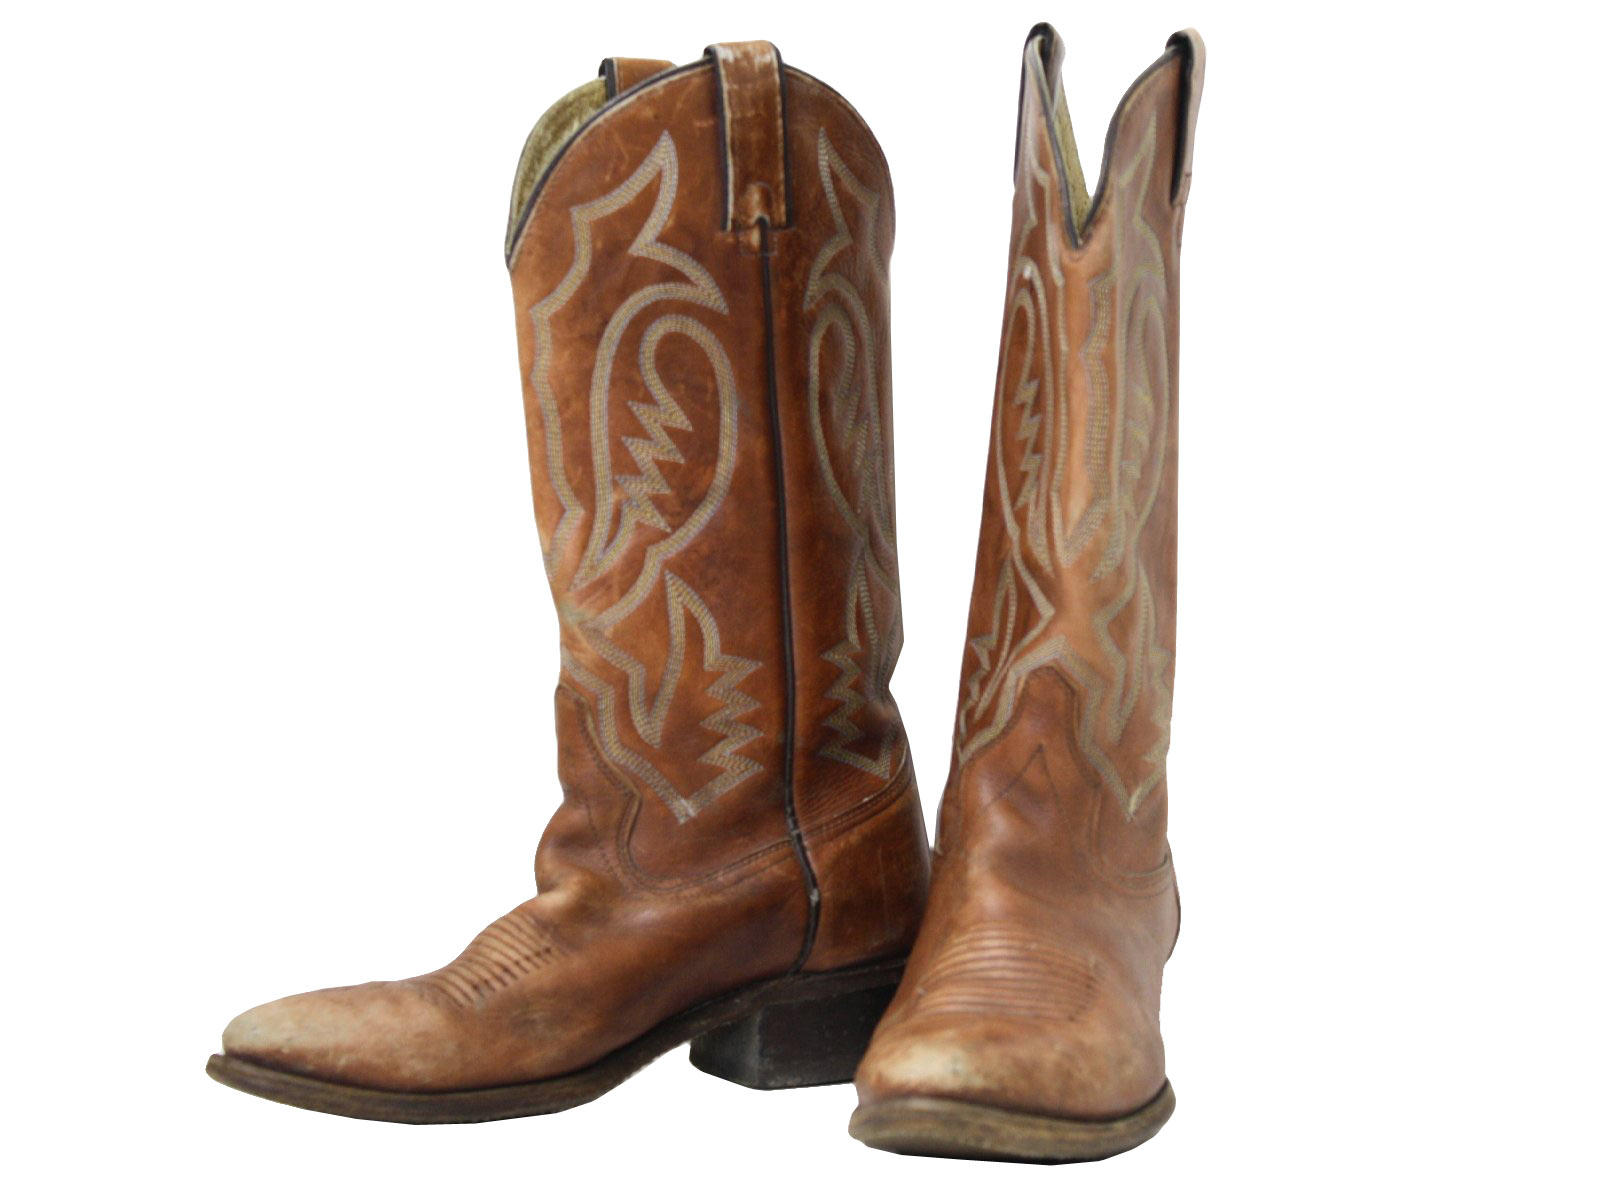 Where To Buy Cowboy Boots g4DluZDt